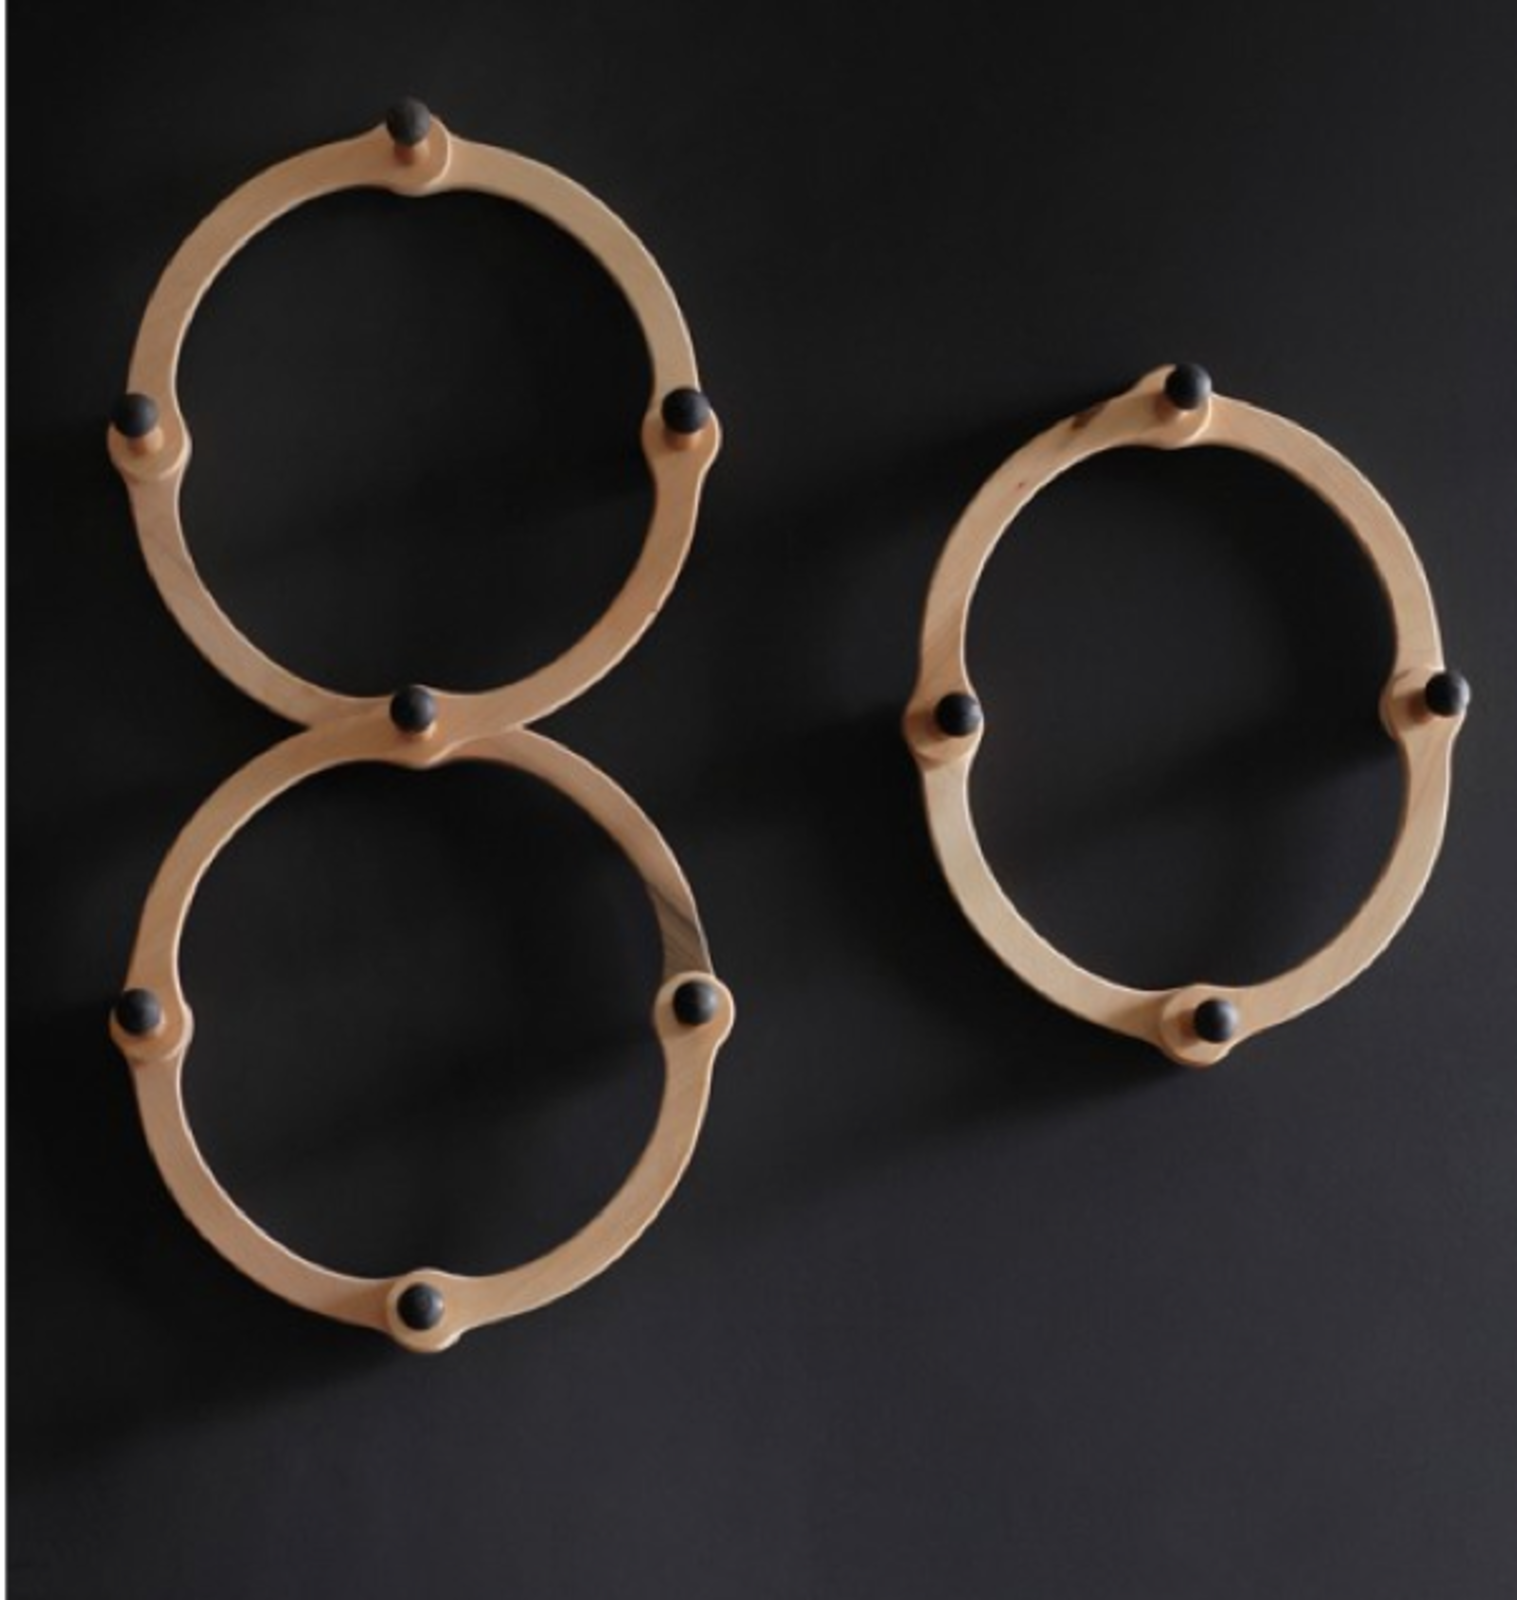 The Occordian coat rack from Lostine strikes a wonderfully pared-down note in the entryway. Its simple form feels at once modern and Shaker, and we love the clever functionality (its circular shape accordions from circle to oval). (price available upon request)  Dwell Holiday Gift Guide: For the One Who's Got It All by Dwell